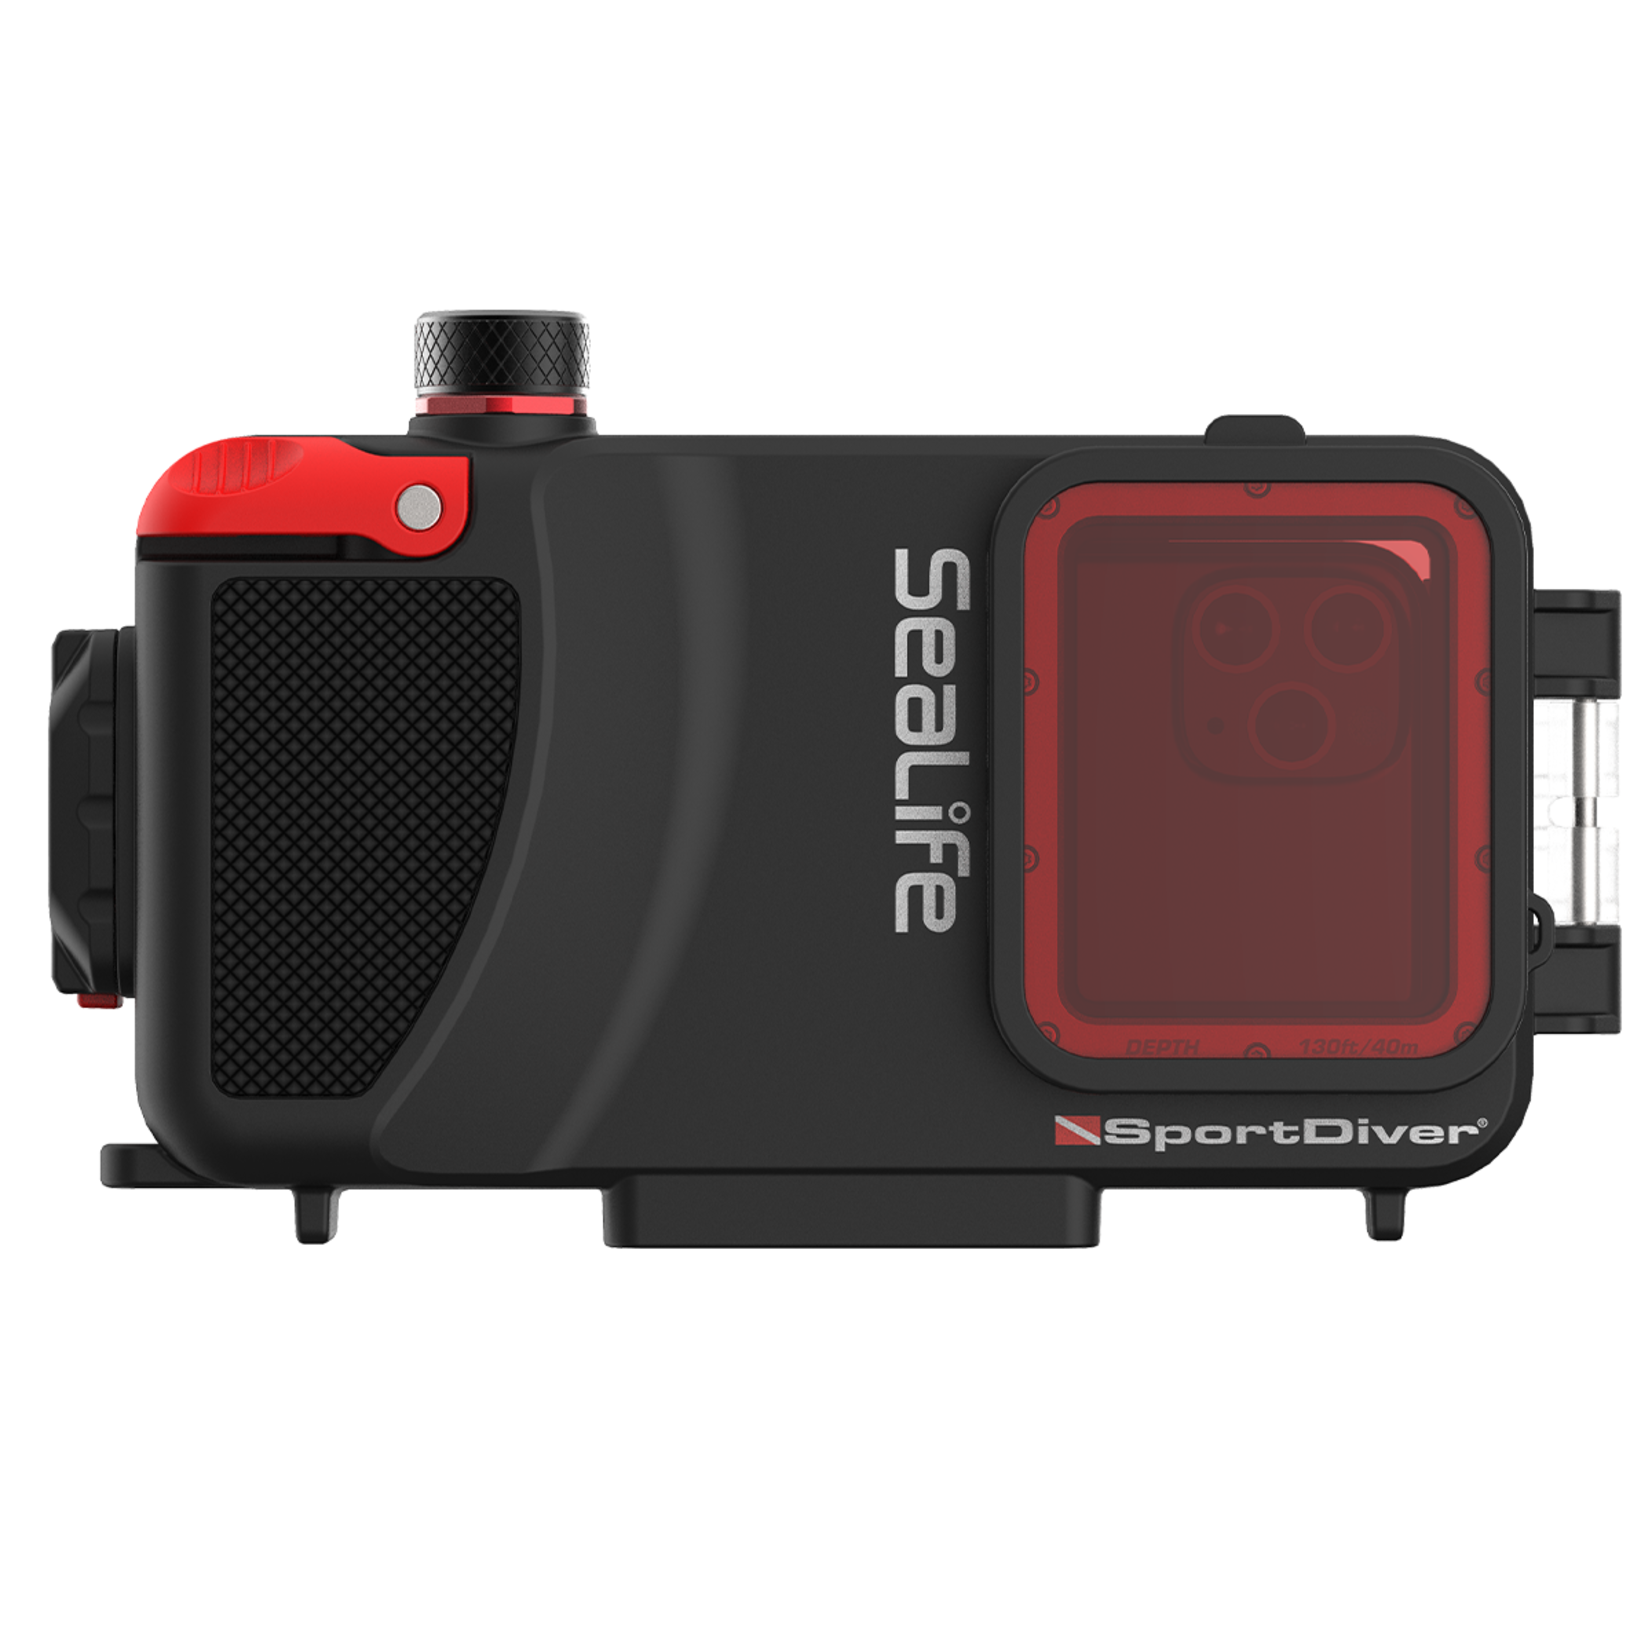 Sealife SportDiver Underwater Housing for Iphone and Android